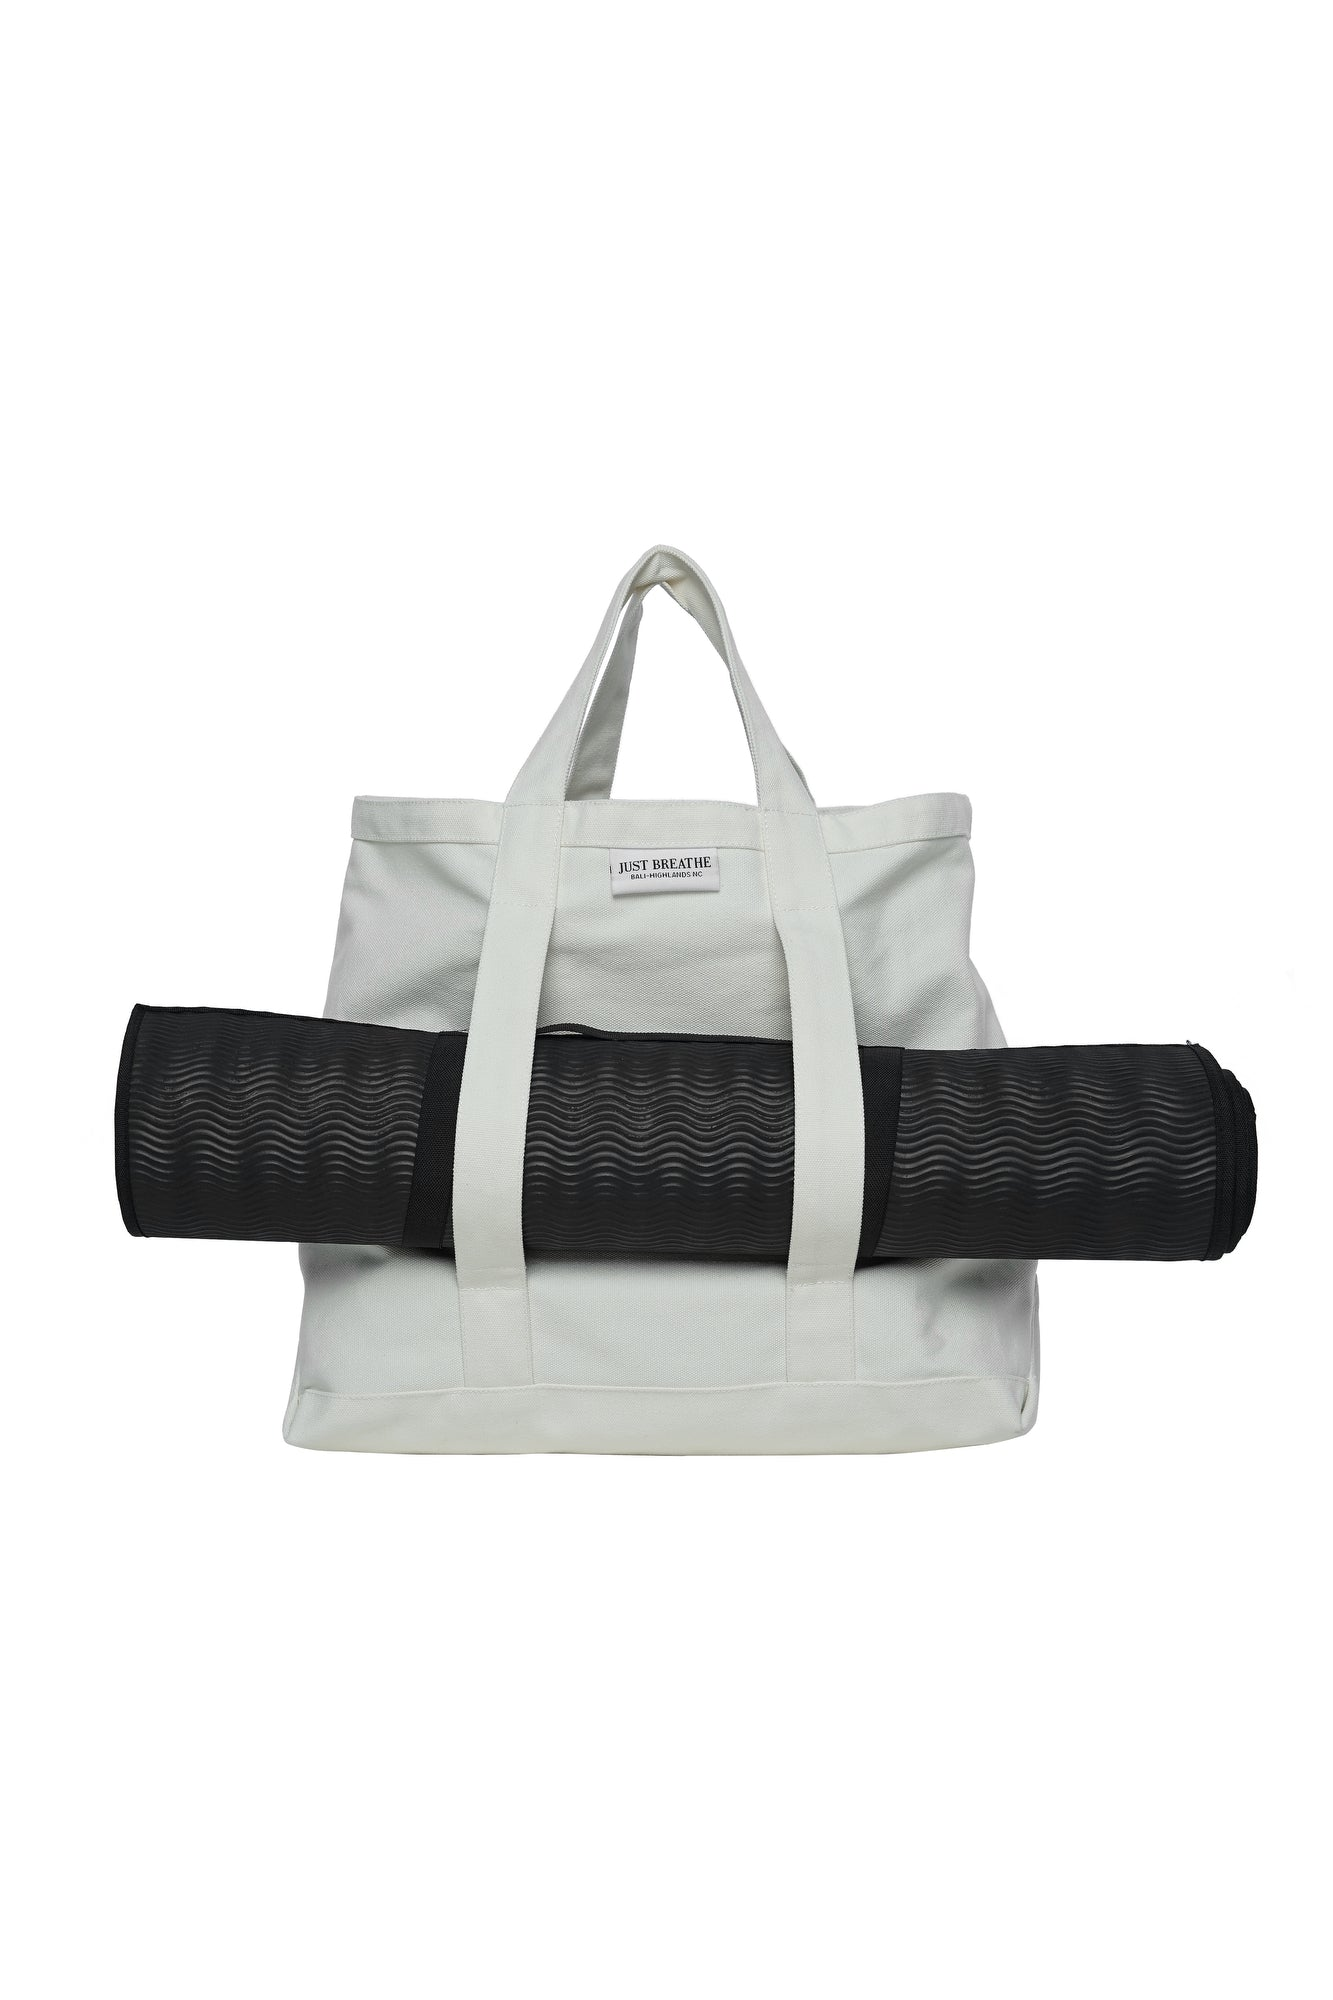 white canvas market style yoga bag beach bag